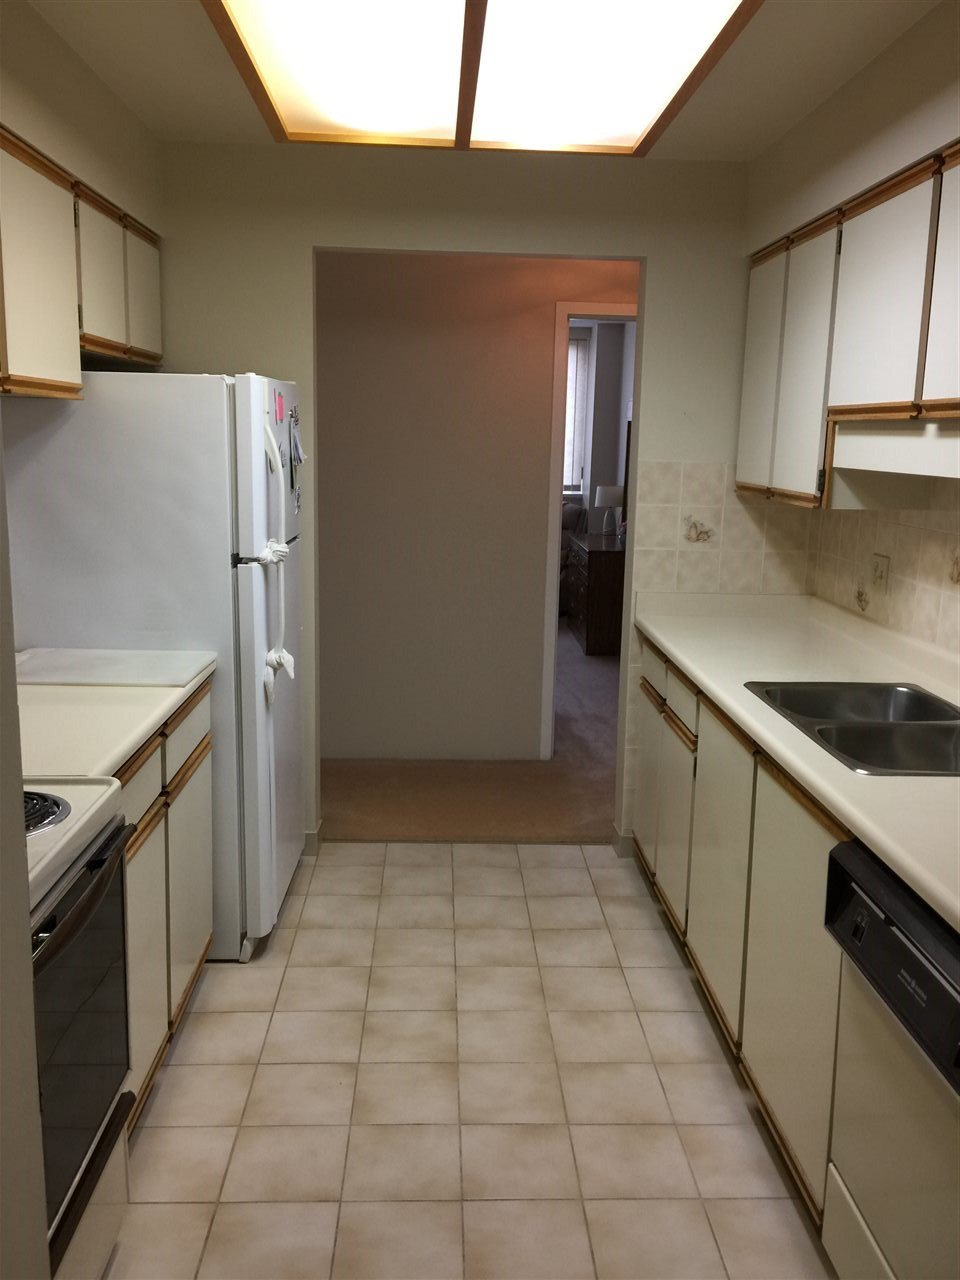 """Photo 8: Photos: 307 3920 HASTINGS Street in Burnaby: Willingdon Heights Condo for sale in """"INGLETON TERRACE"""" (Burnaby North)  : MLS®# R2181109"""